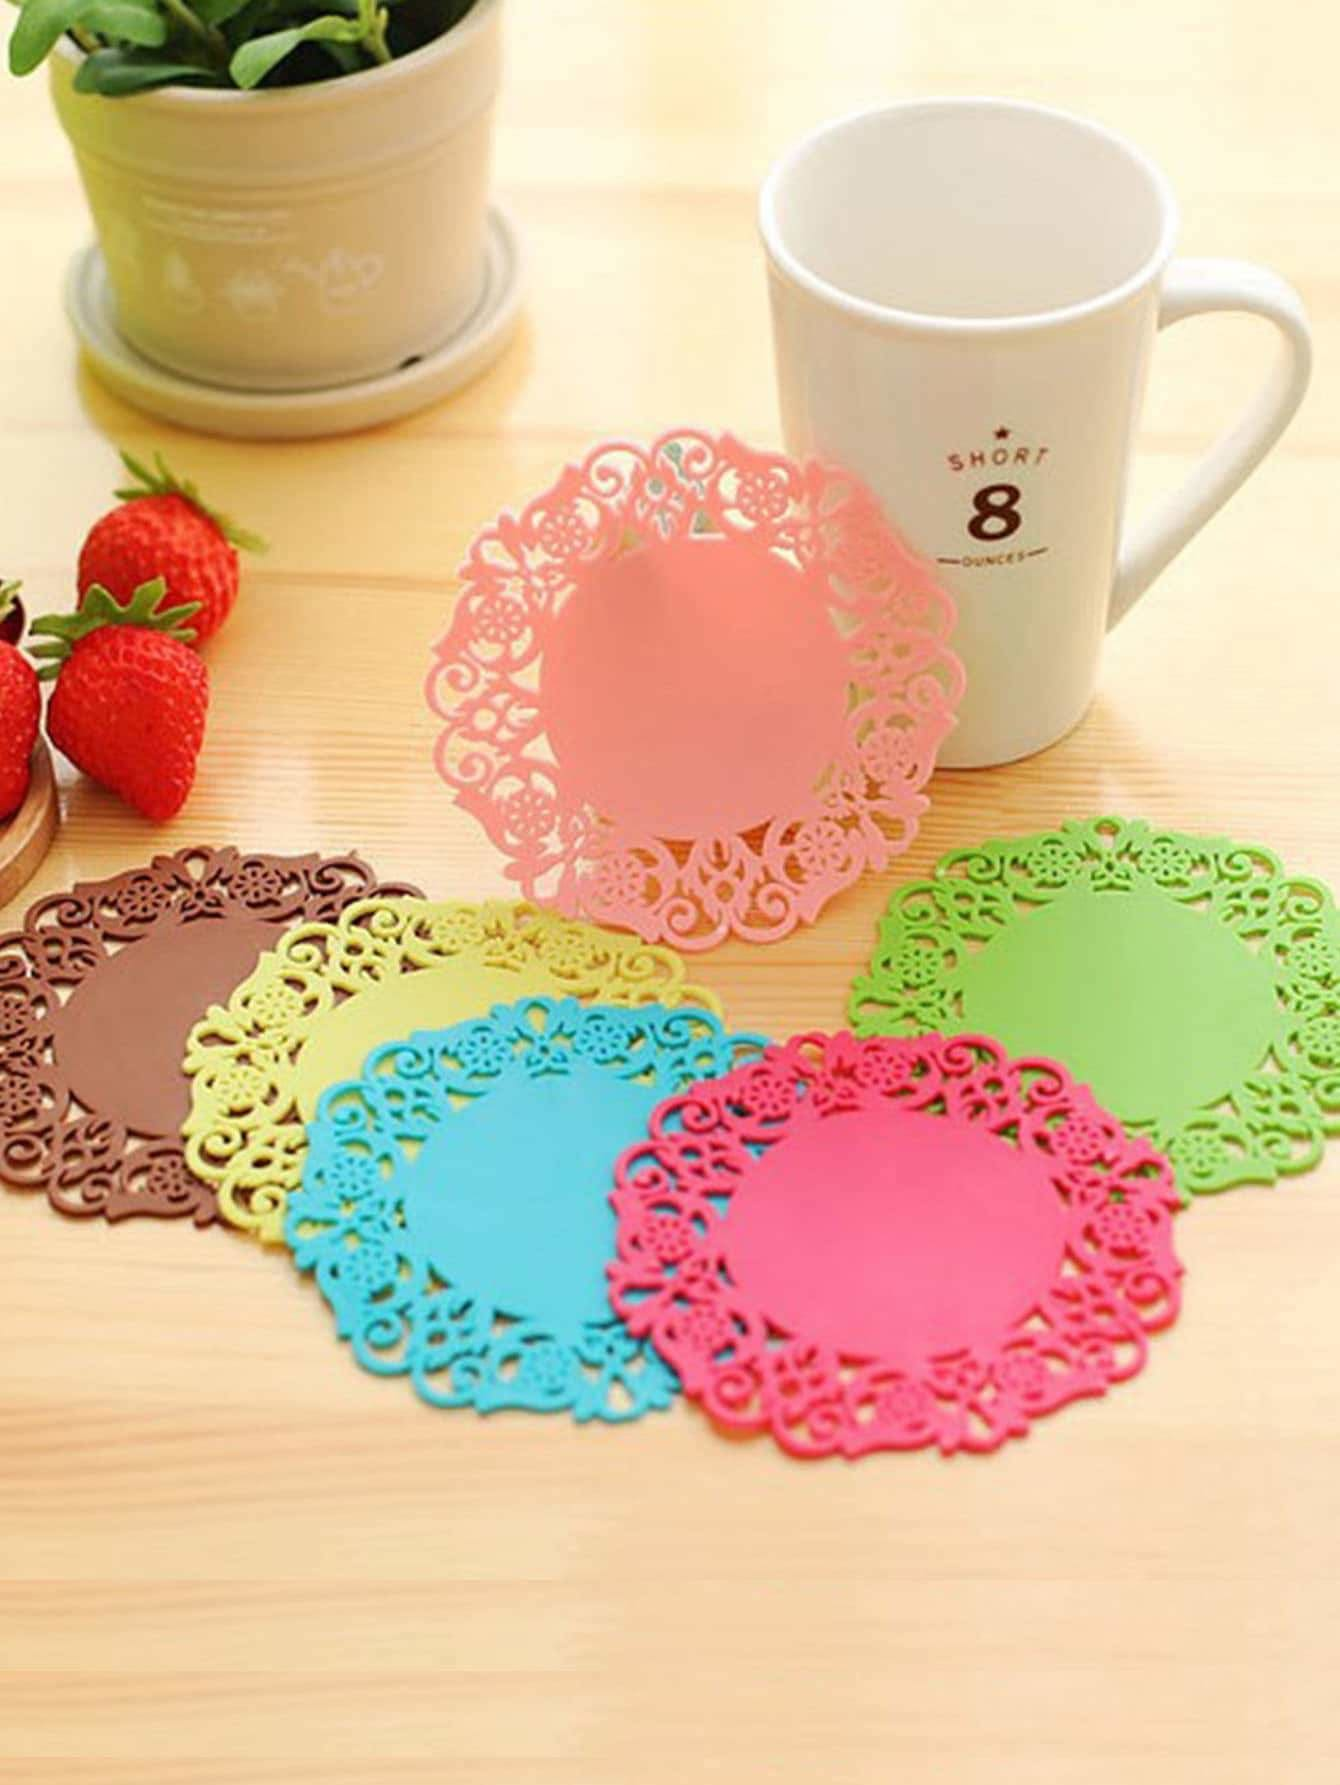 Lace Coaster Set 6Pcs - One-Size / One Color - Dining